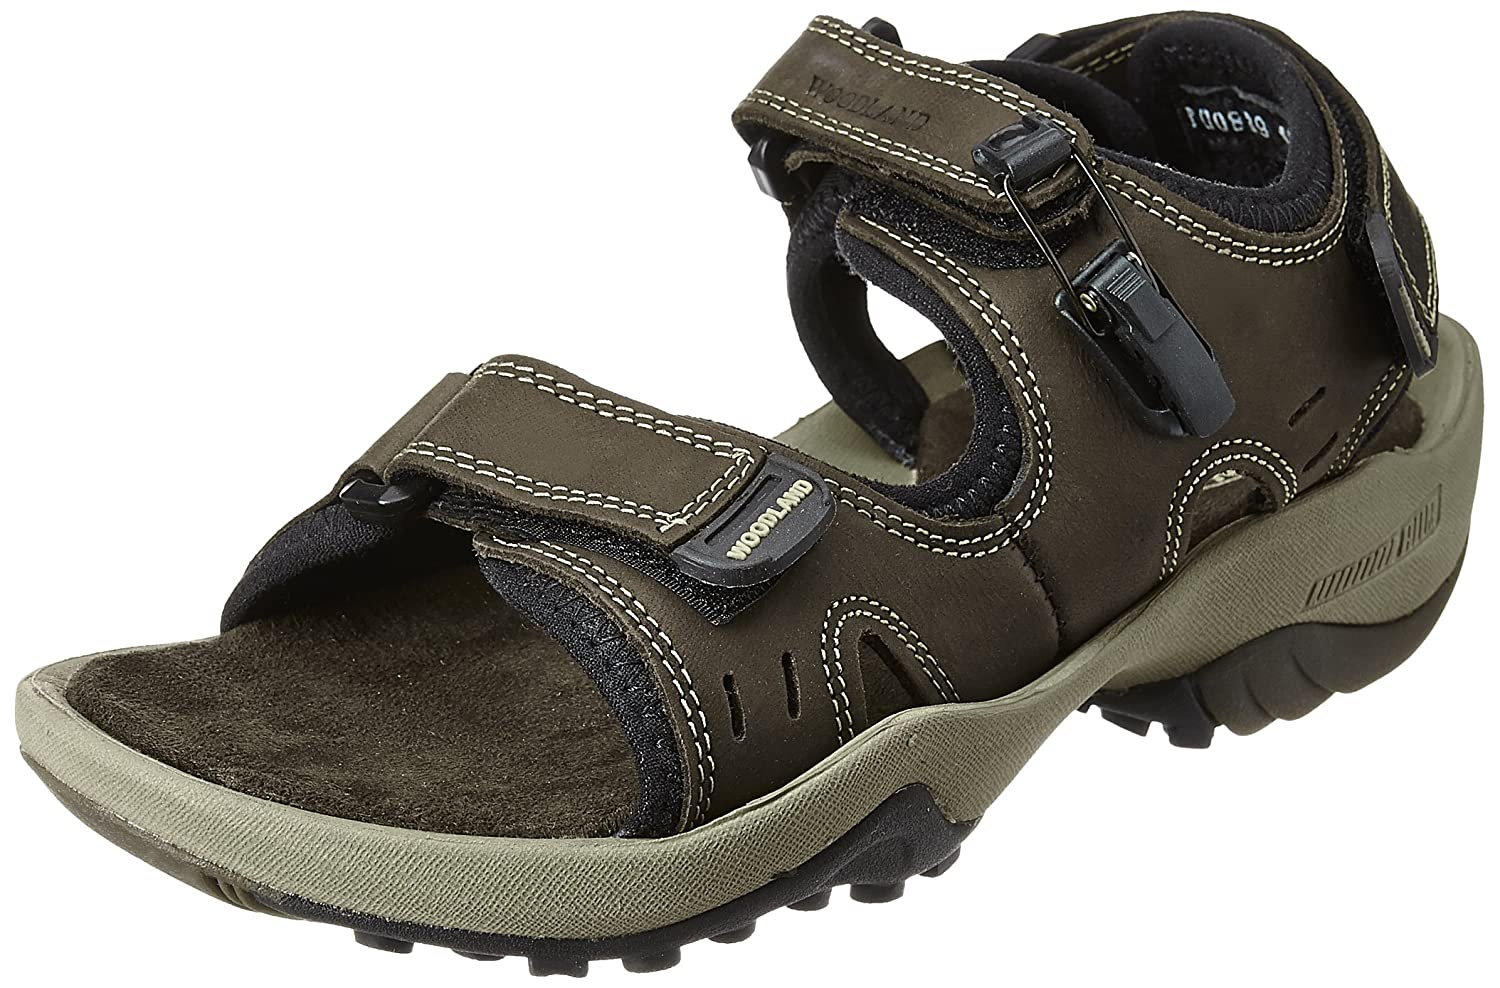 d18b81ea31ed Woodland Men s Leather Sandals and Floaters  Buy Online at Low Prices in  India - Amazon.in